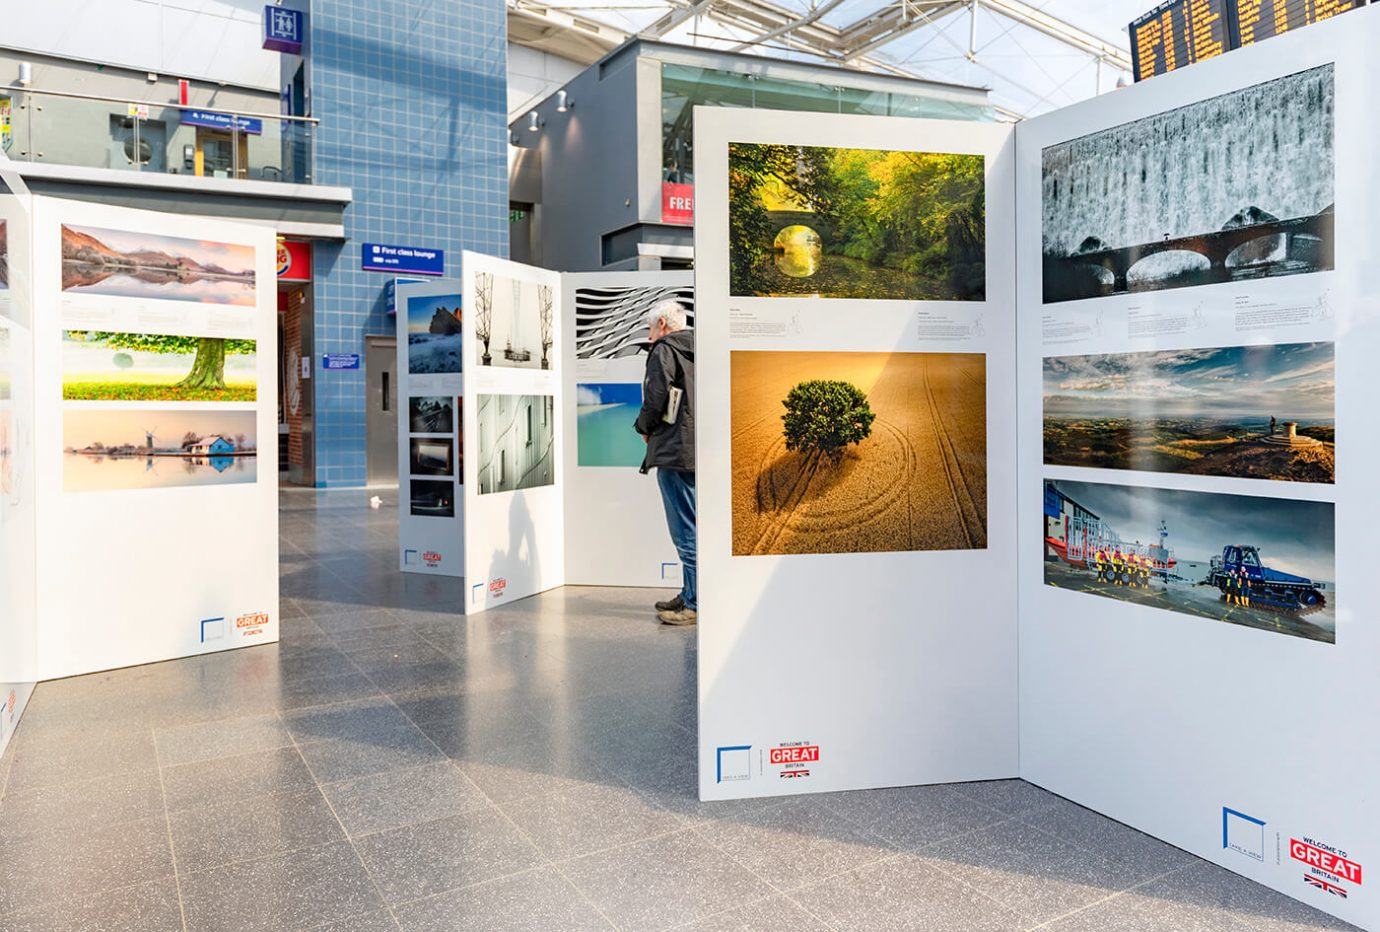 Take-a-View Landscape Photographer of the Year 2017-18 Exhibition Manchester Piccadilly Train Station